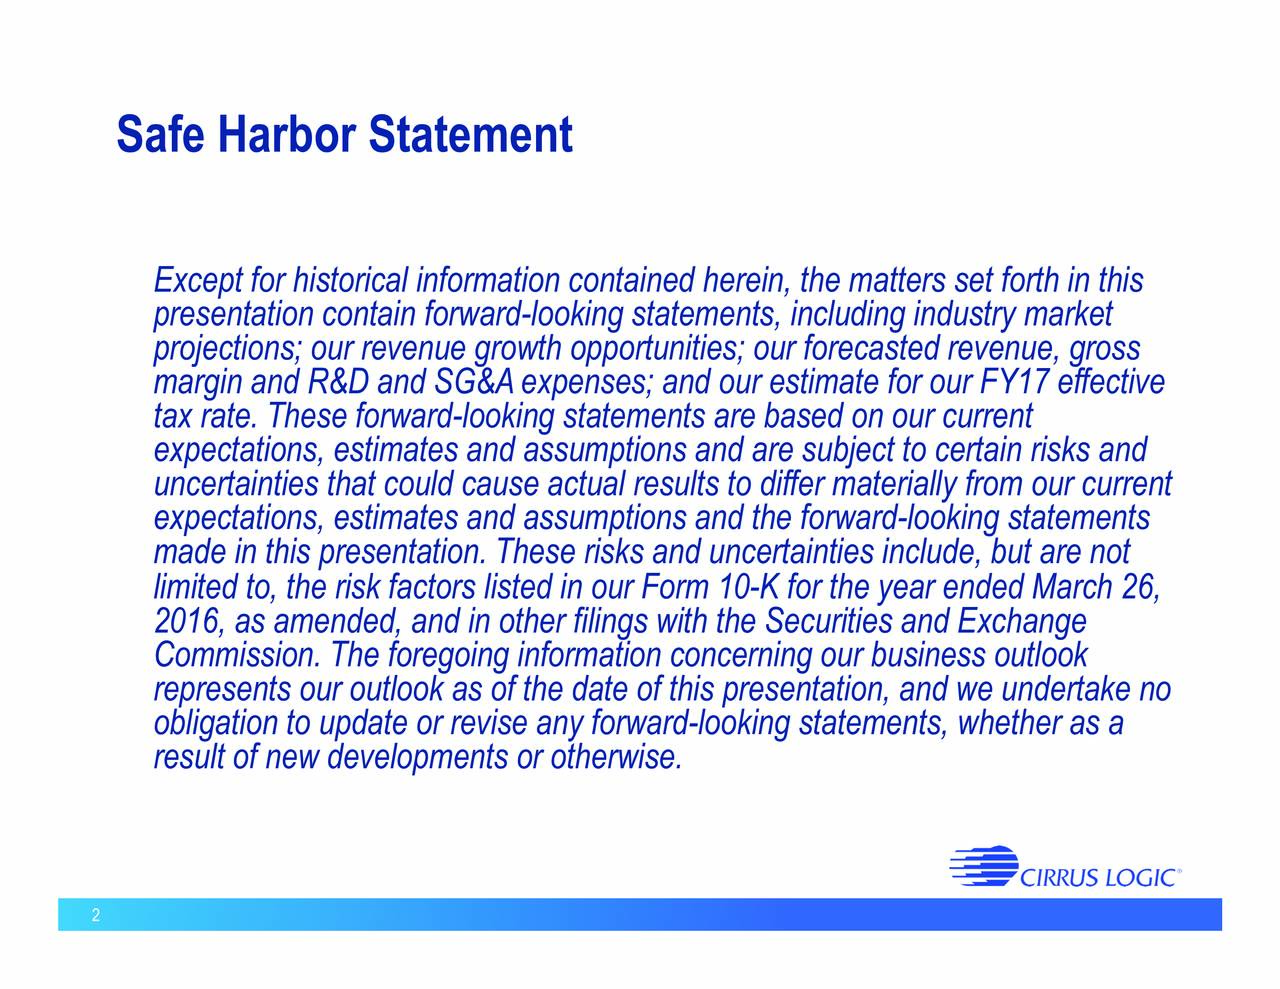 Except for historical information contained herein, the matters set forth in this presentation contain forward-looking statements, including industry market projections; our revenue growth opportunities; our forecasted revenue, gross margin and R&D and SG&Aexpenses; and our estimate for our FY17 effective tax rate. These forward-looking statements are based on our current expectations, estimates and assumptions and are subject to certain risks and expectations, estimates and assumptions and the forward-looking statementsr current made in this presentation. These risks and uncertainties include, but are not limited to, the risk factors listed in our Form 10-K for the year ended March 26, 2016, as amended, and in other filings with the Securities and Exchange Commission. The foregoing information concerning our business outlook represents our outlook as of the date of this presentation, and we undertake no obligation to update or revise any forward-looking statements, whether as a result of new developments or otherwise. 2